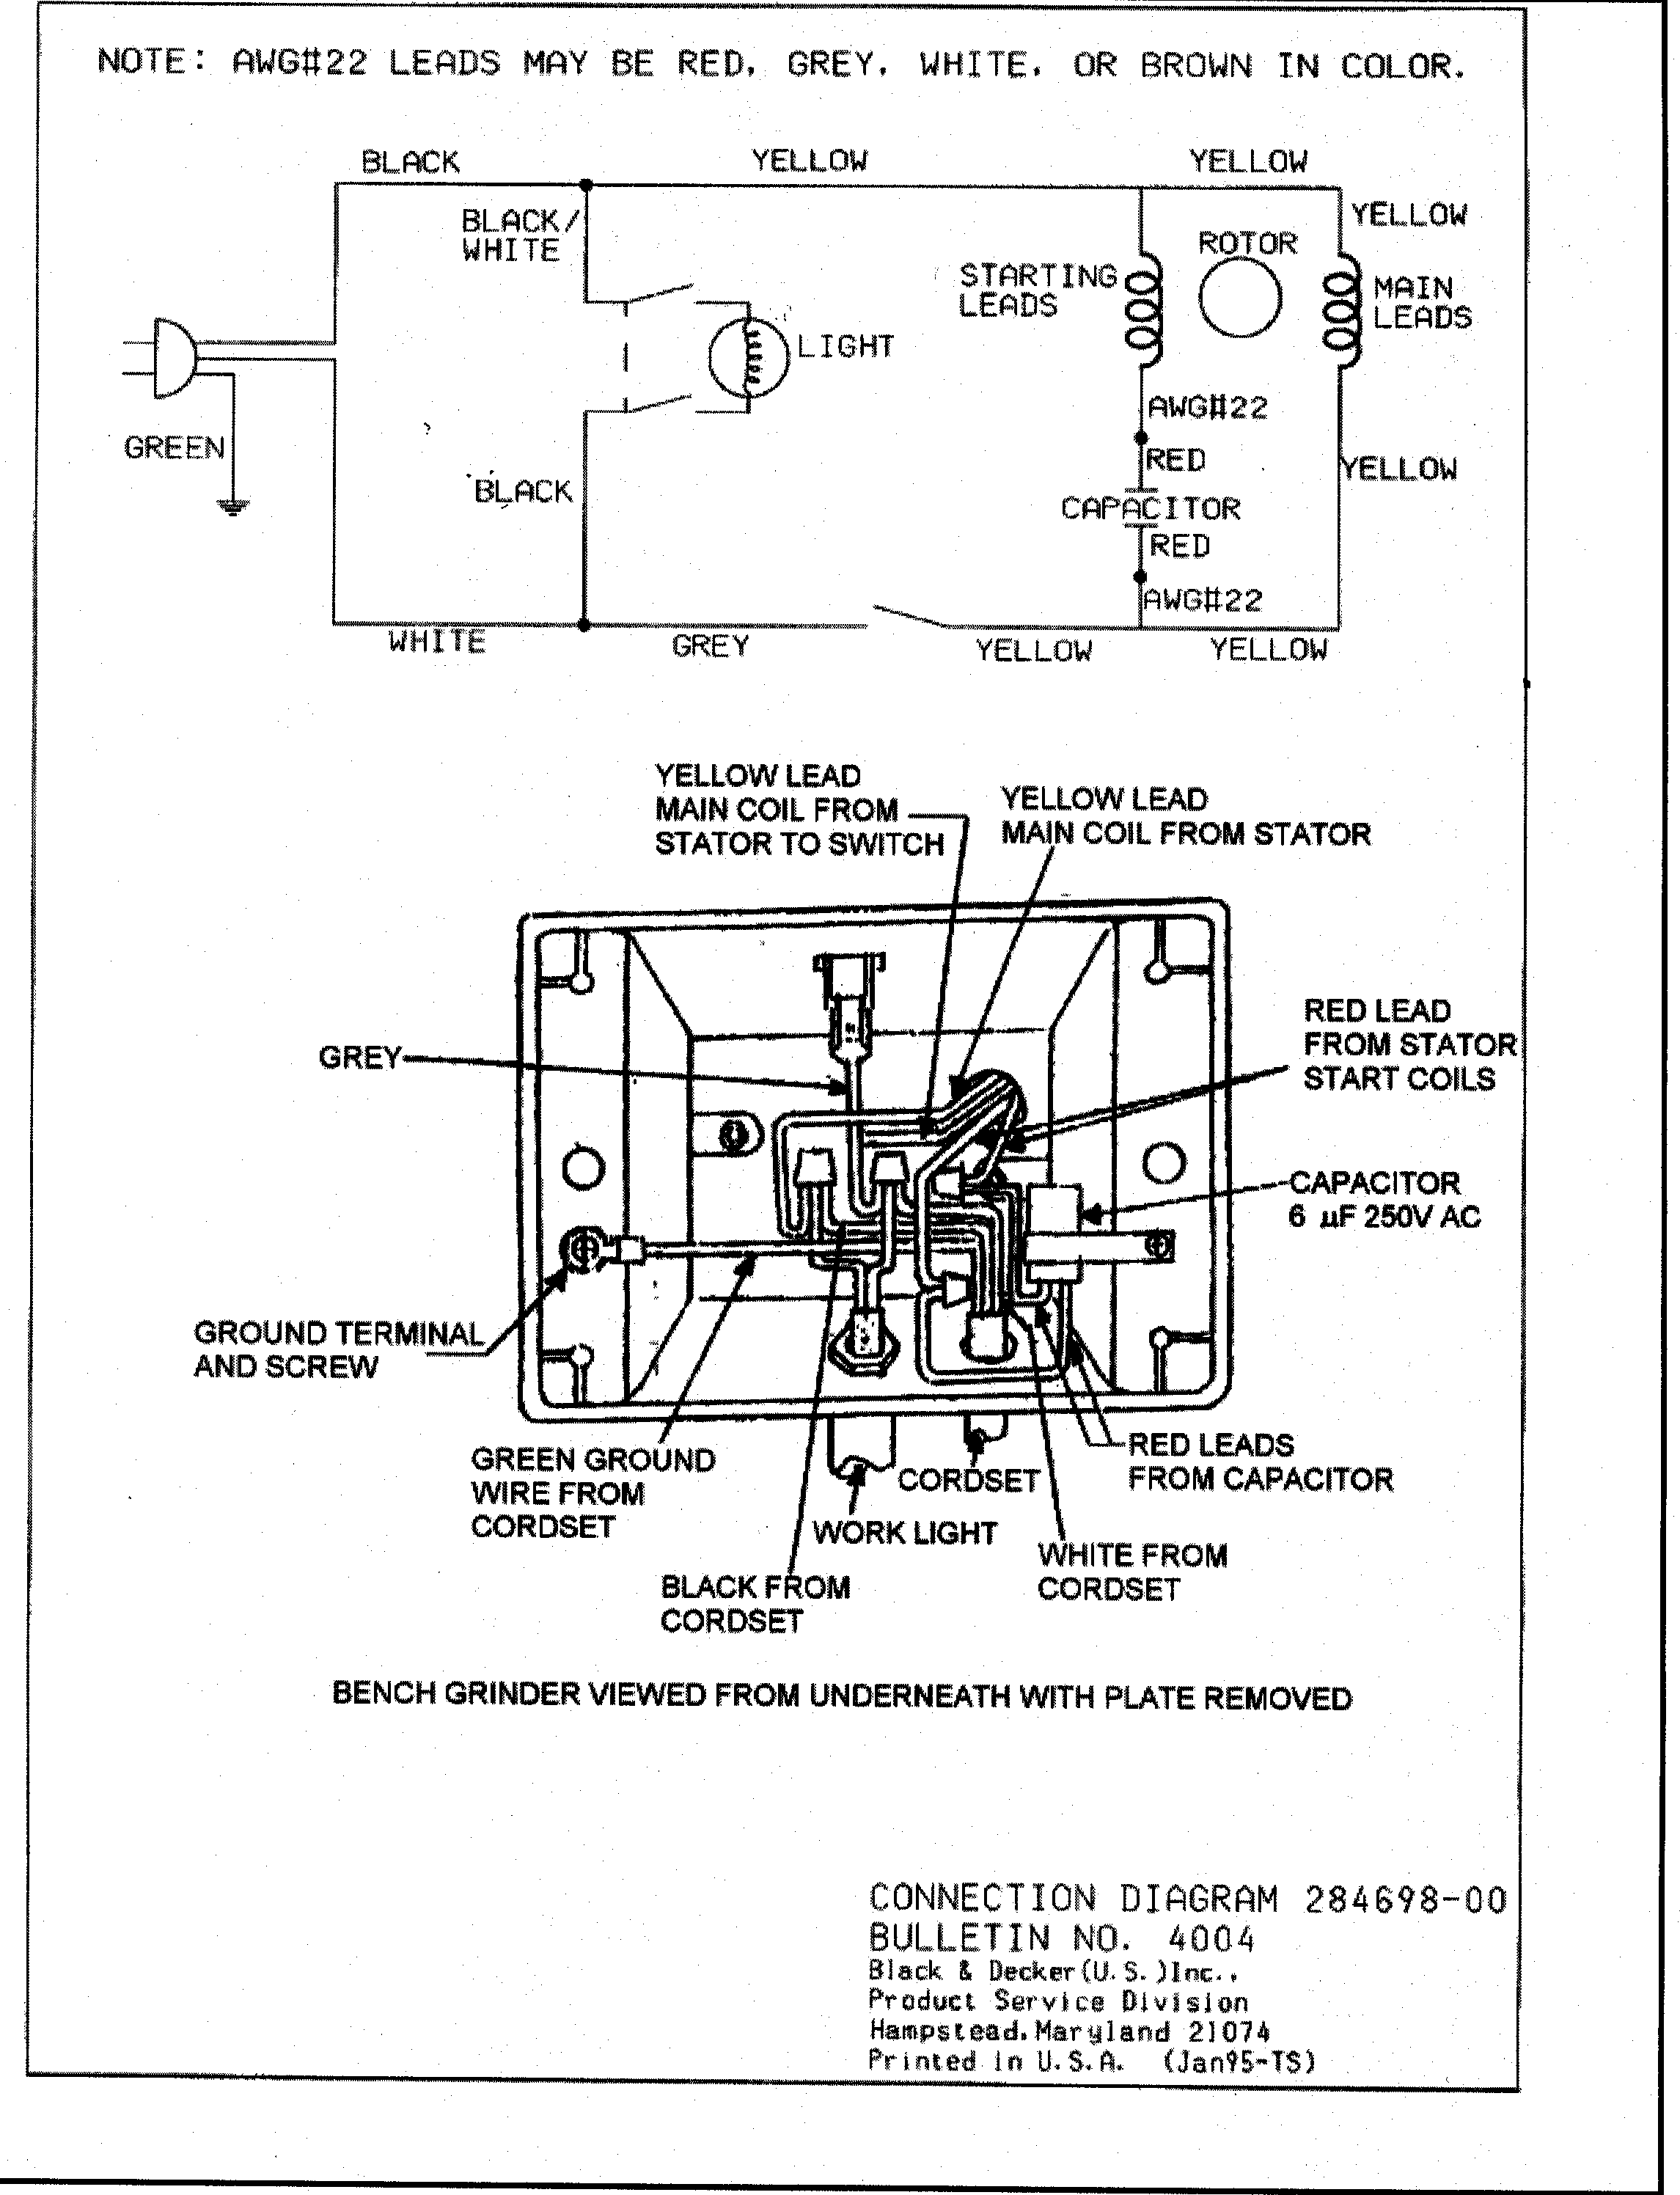 50024029 00002 bench grinder wiring diagram Craftsman Bench Grinder Schematic at readyjetset.co